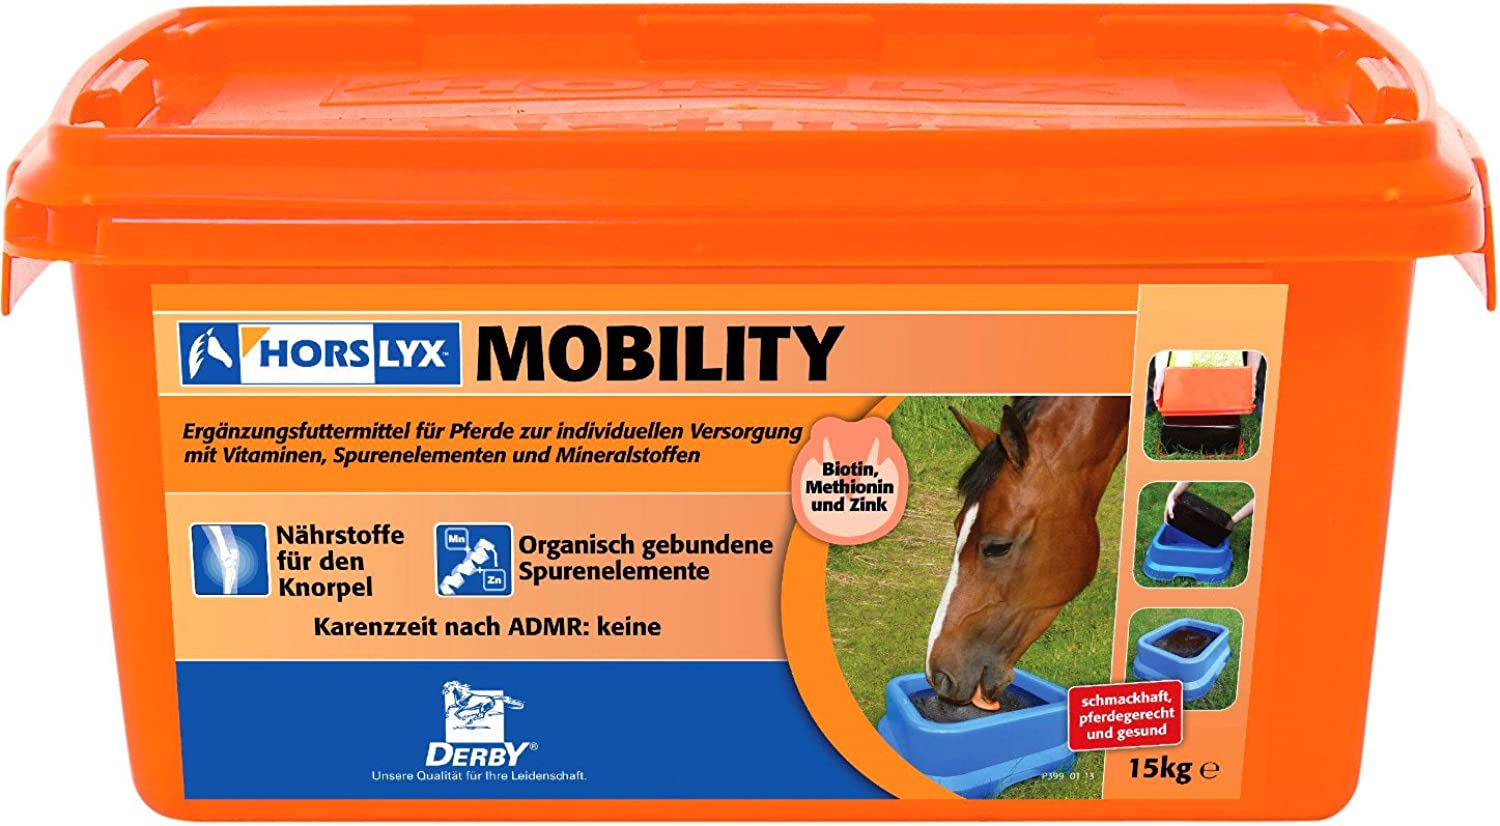 Derby horslyx Mobility 15 kg